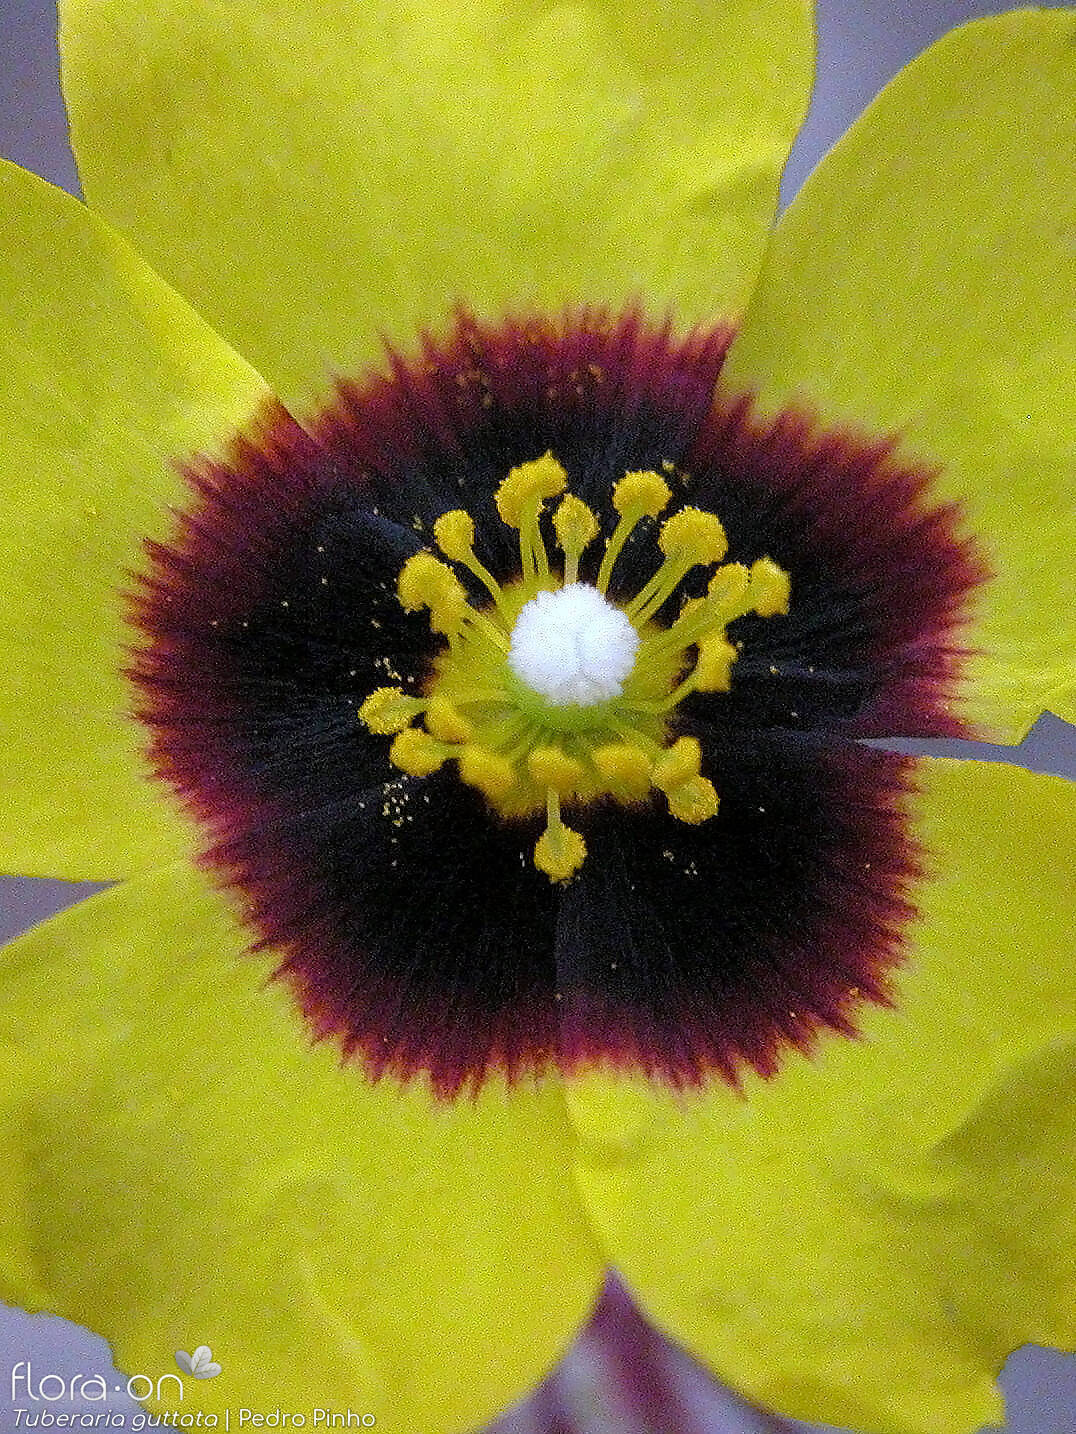 Tuberaria guttata - Flor (close-up) | Pedro Pinho; CC BY-NC 4.0